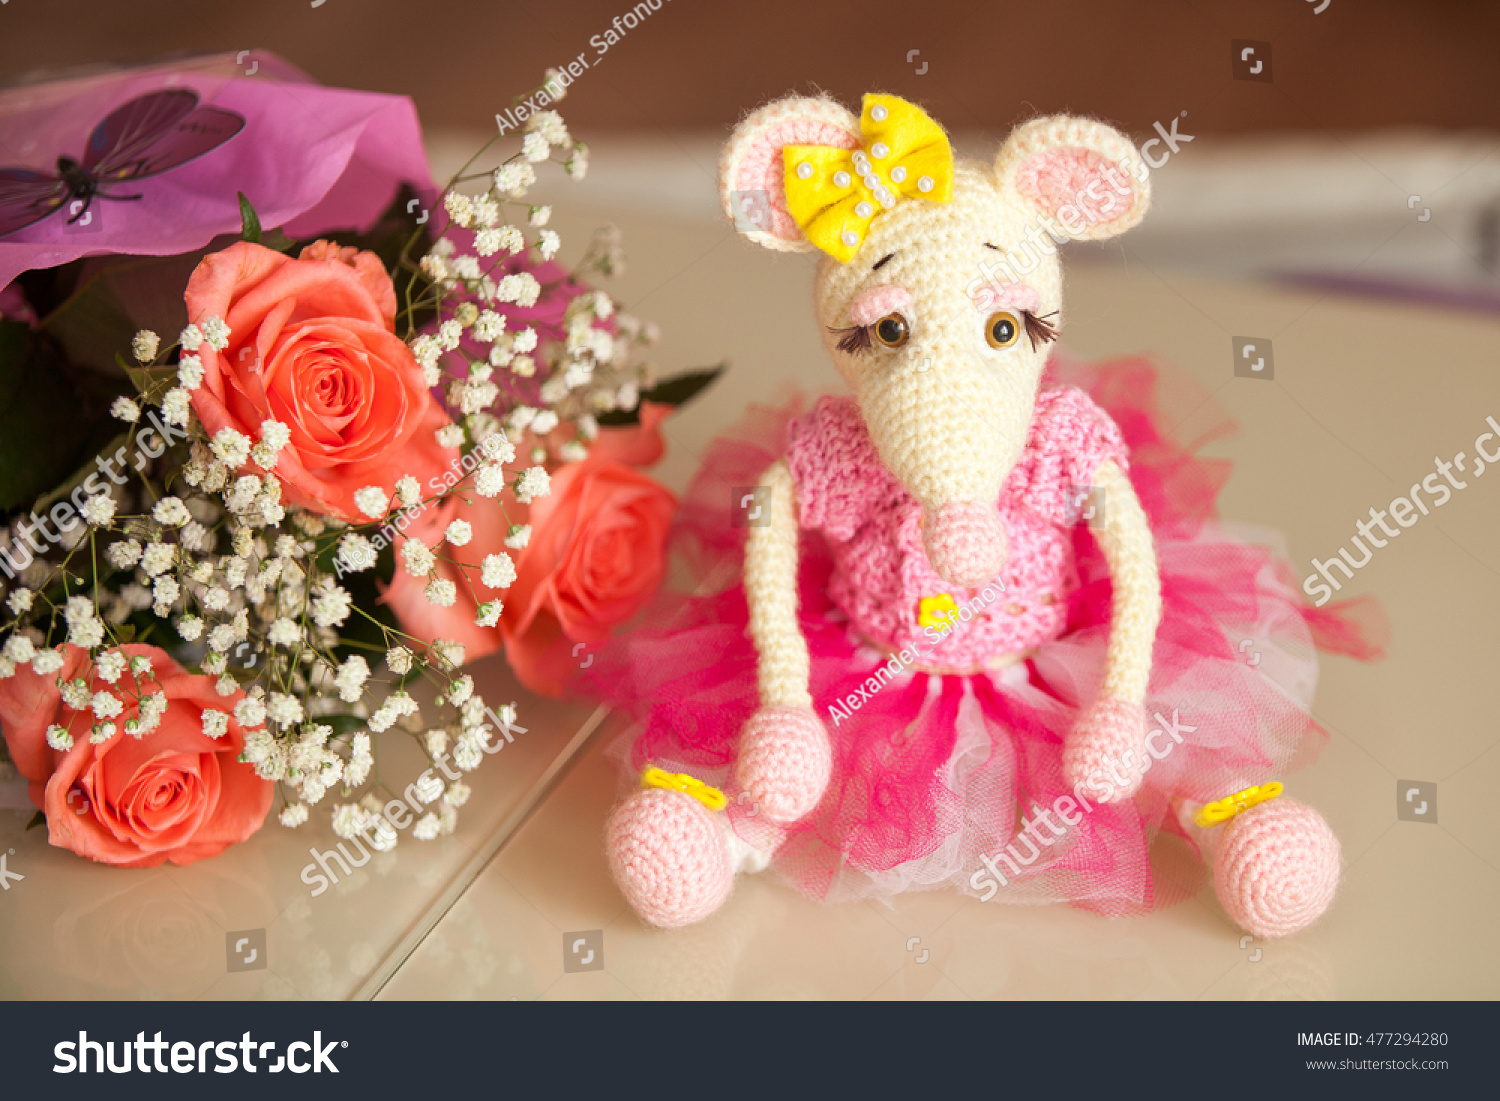 Knitted Amigurumi Mouse Sitting On Table Stock Photo (Safe to Use ...